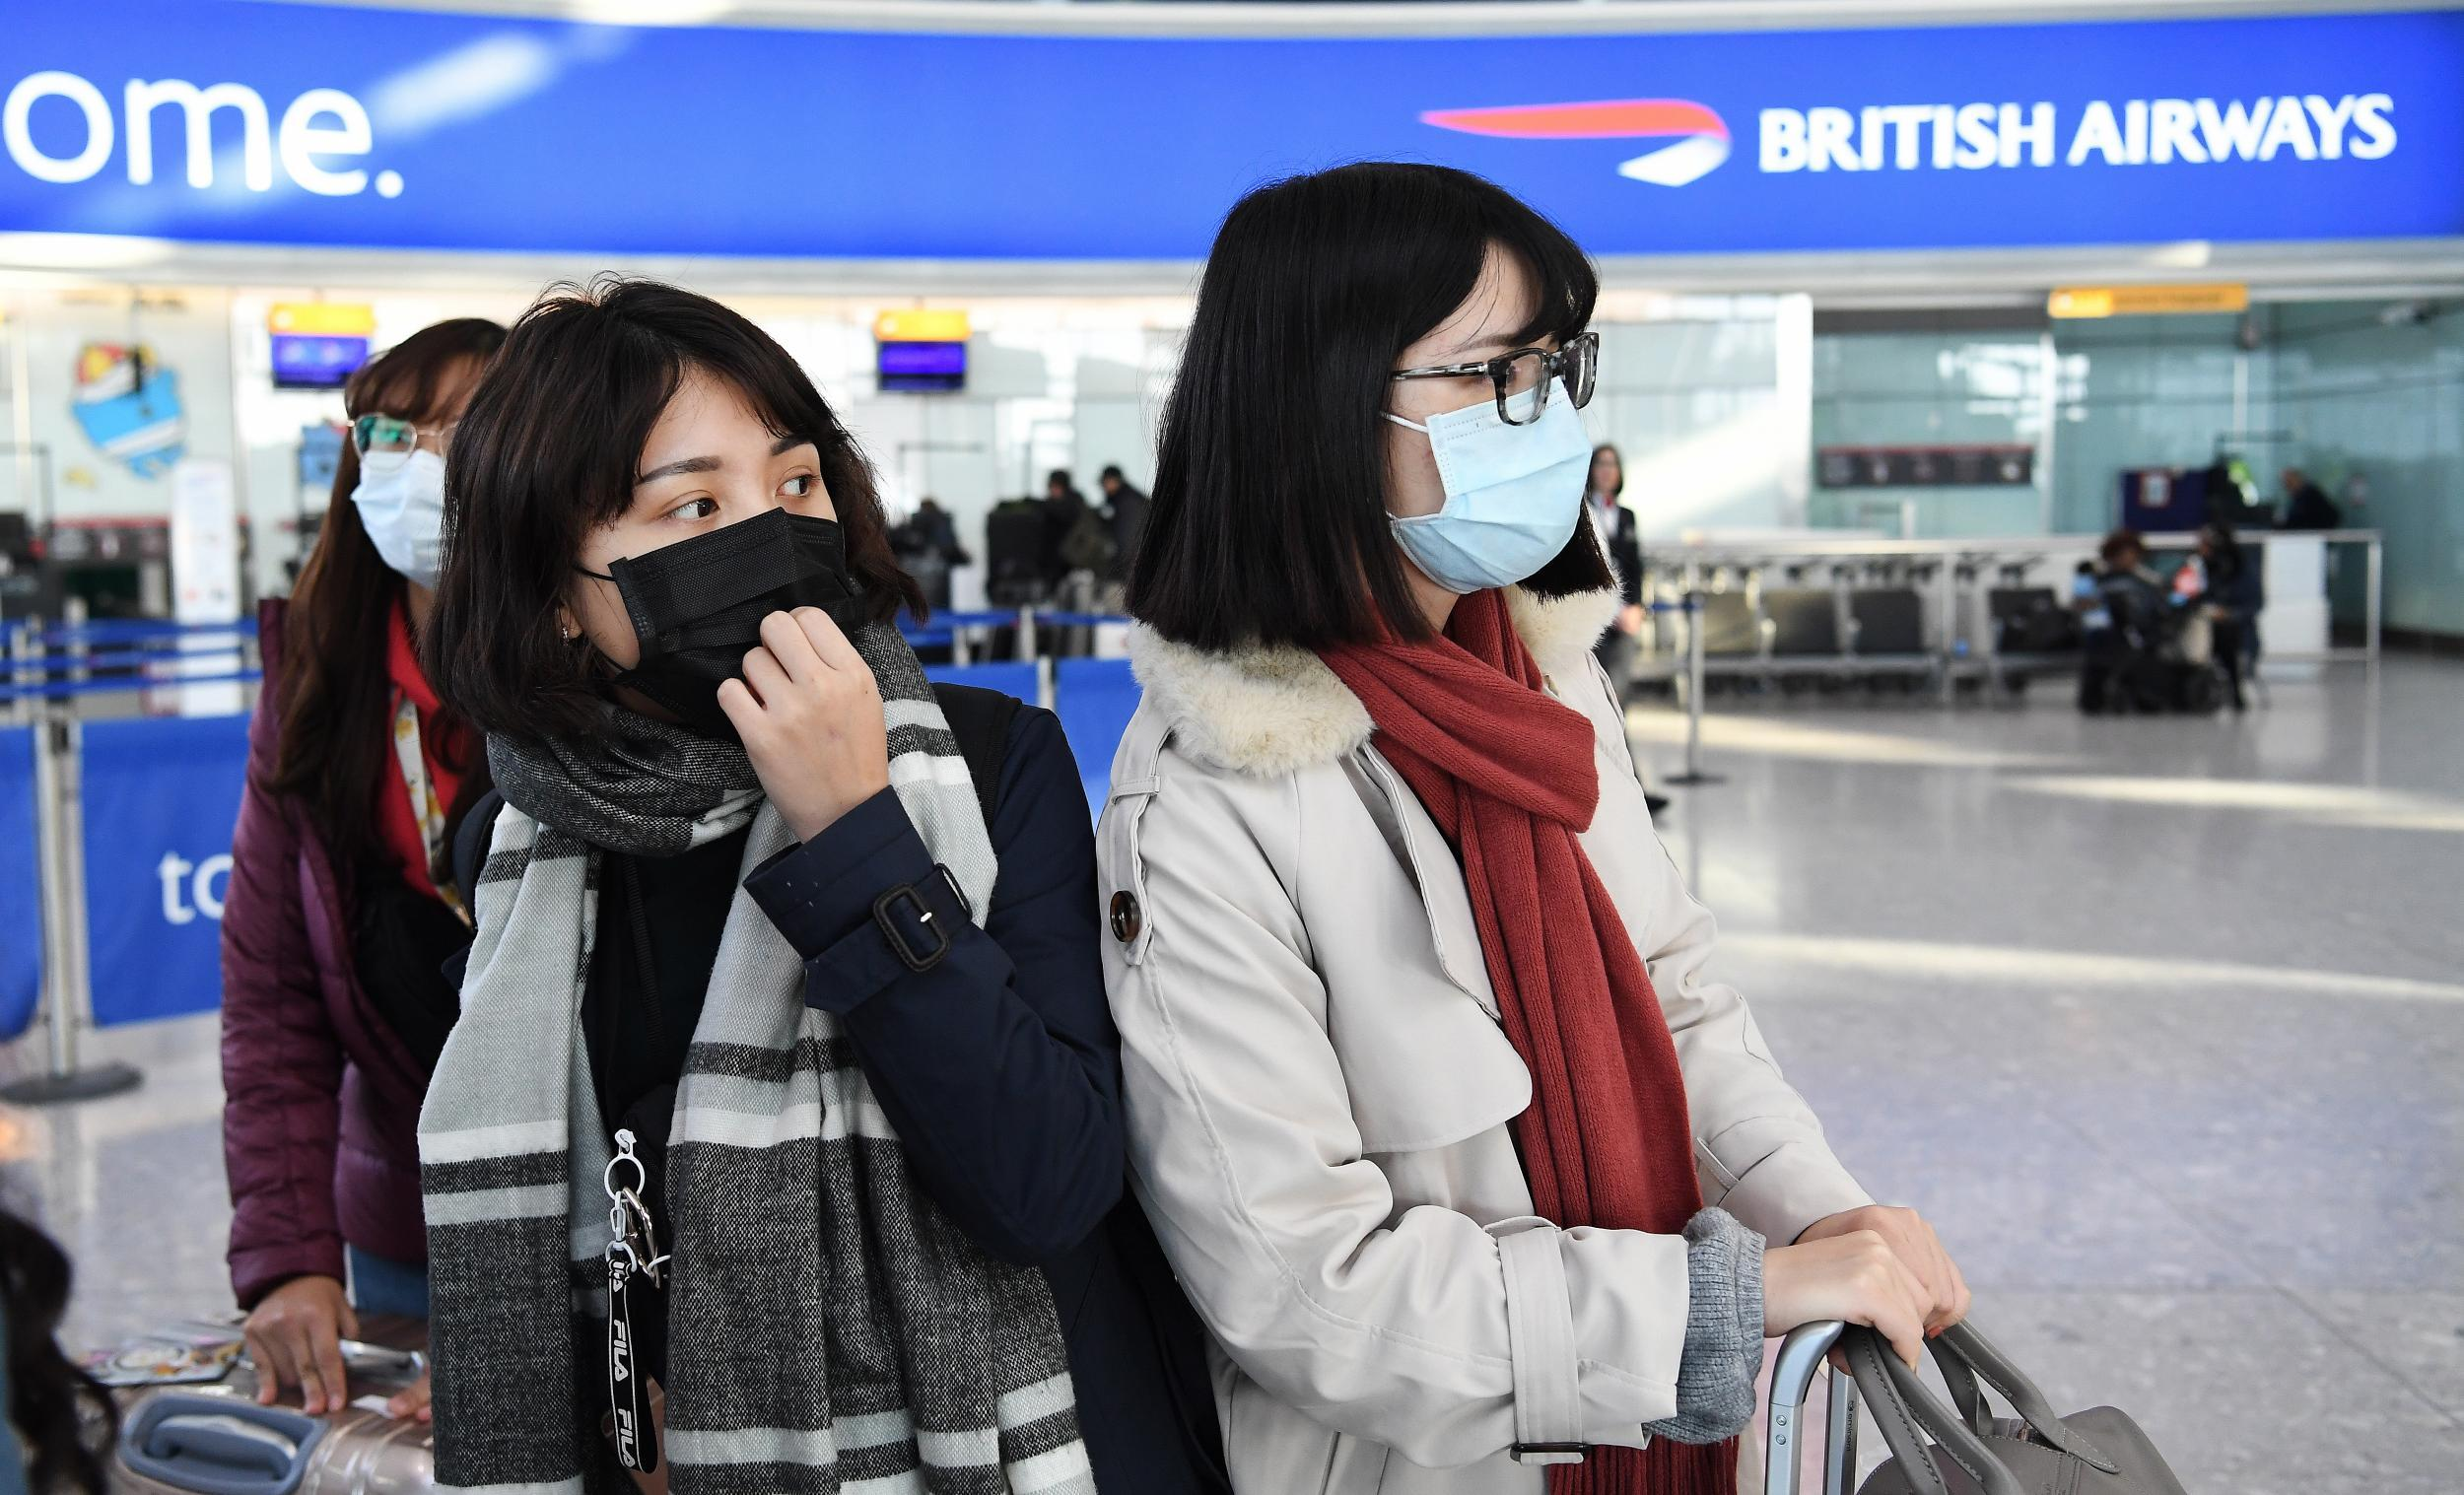 British Airways flight to Italy forced to return to gate so passenger can get off over coronavirus fears